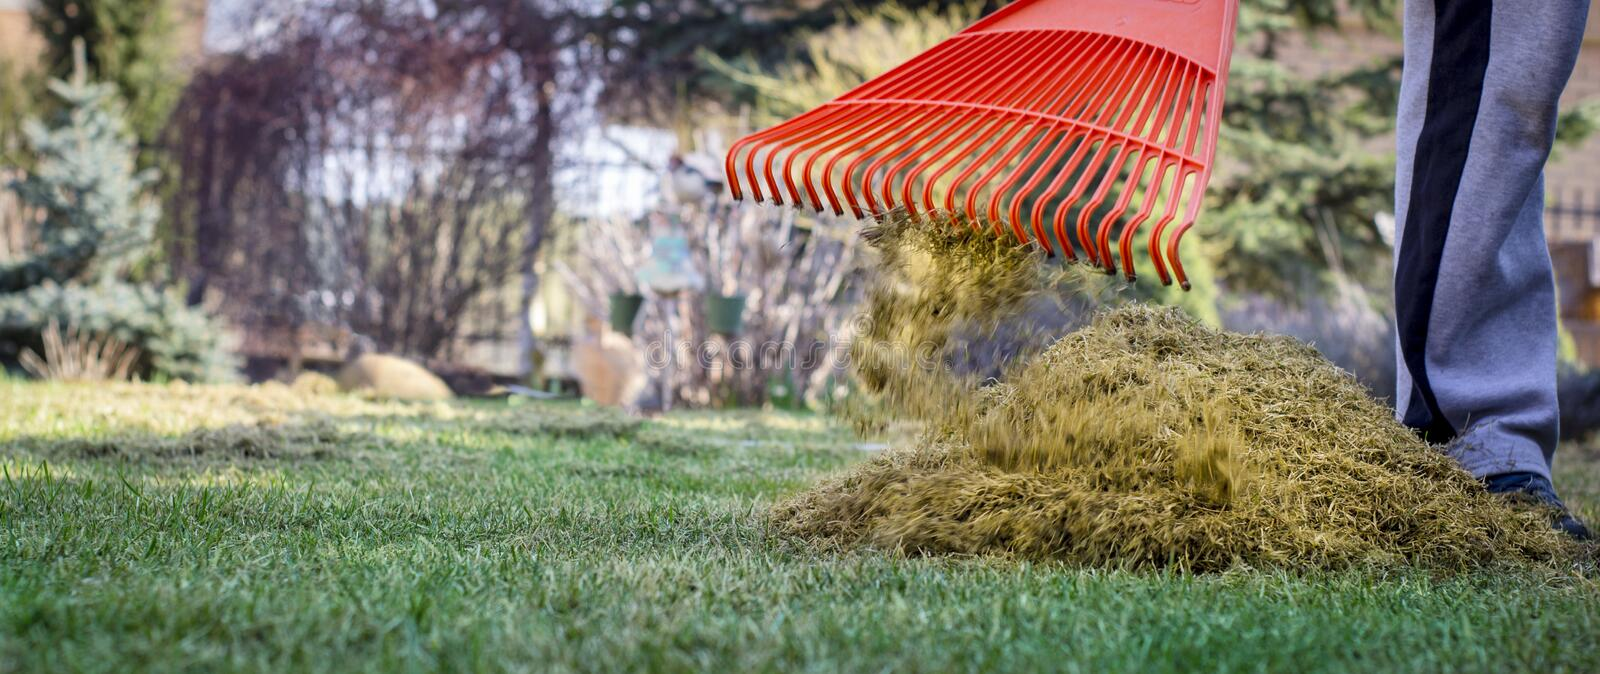 A man clogs the felt with a lawn with red plastic rags, after aeration royalty free stock photography